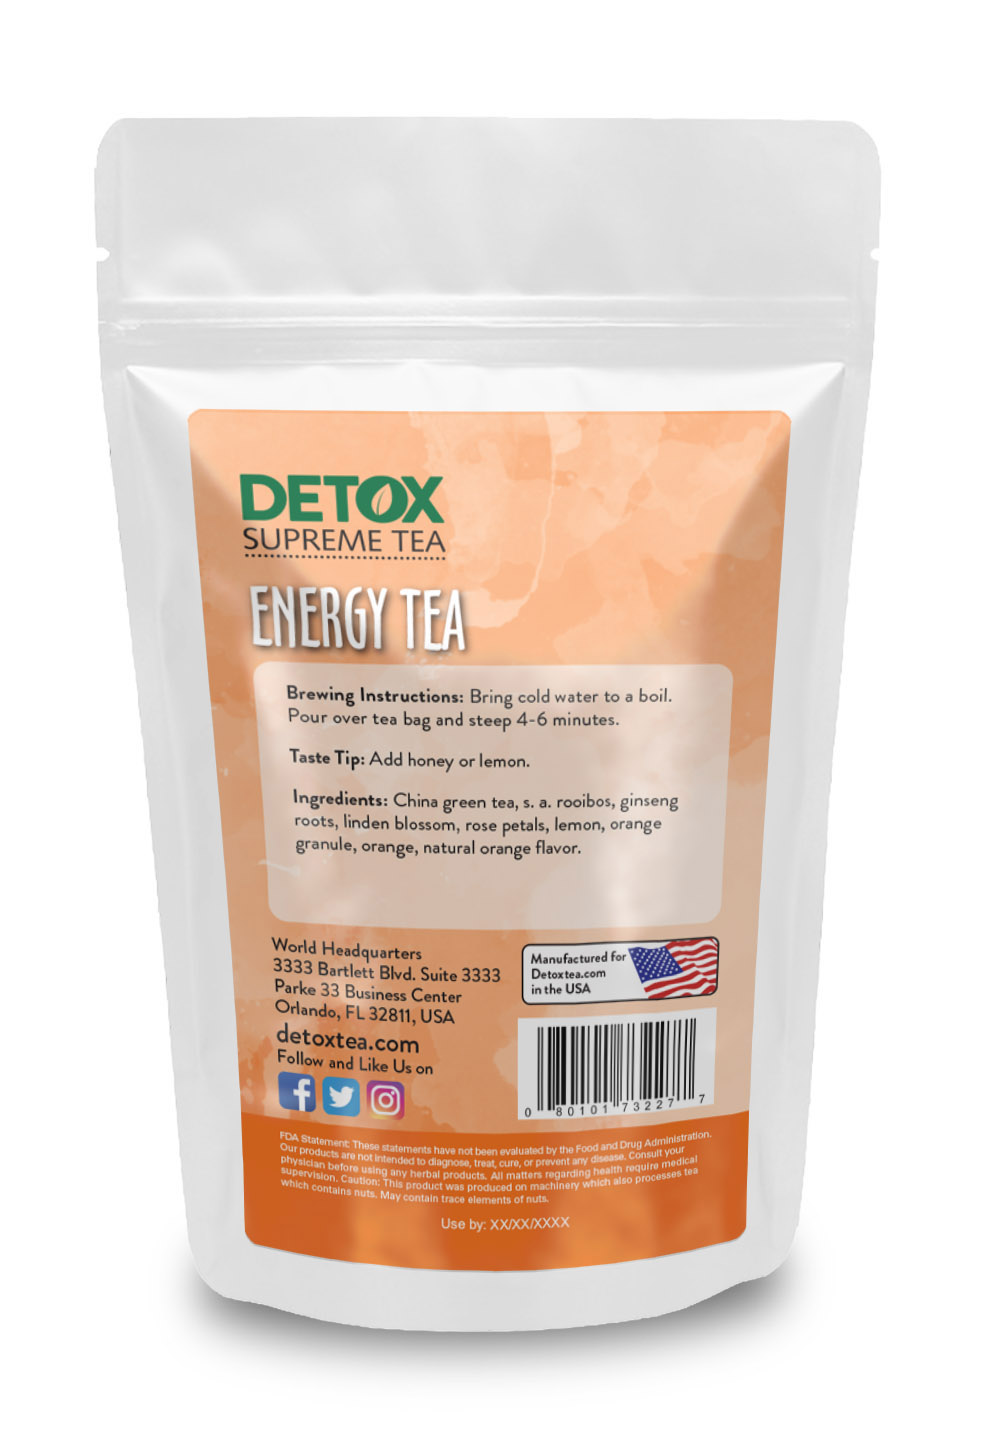 14 Day Energy Tea Back